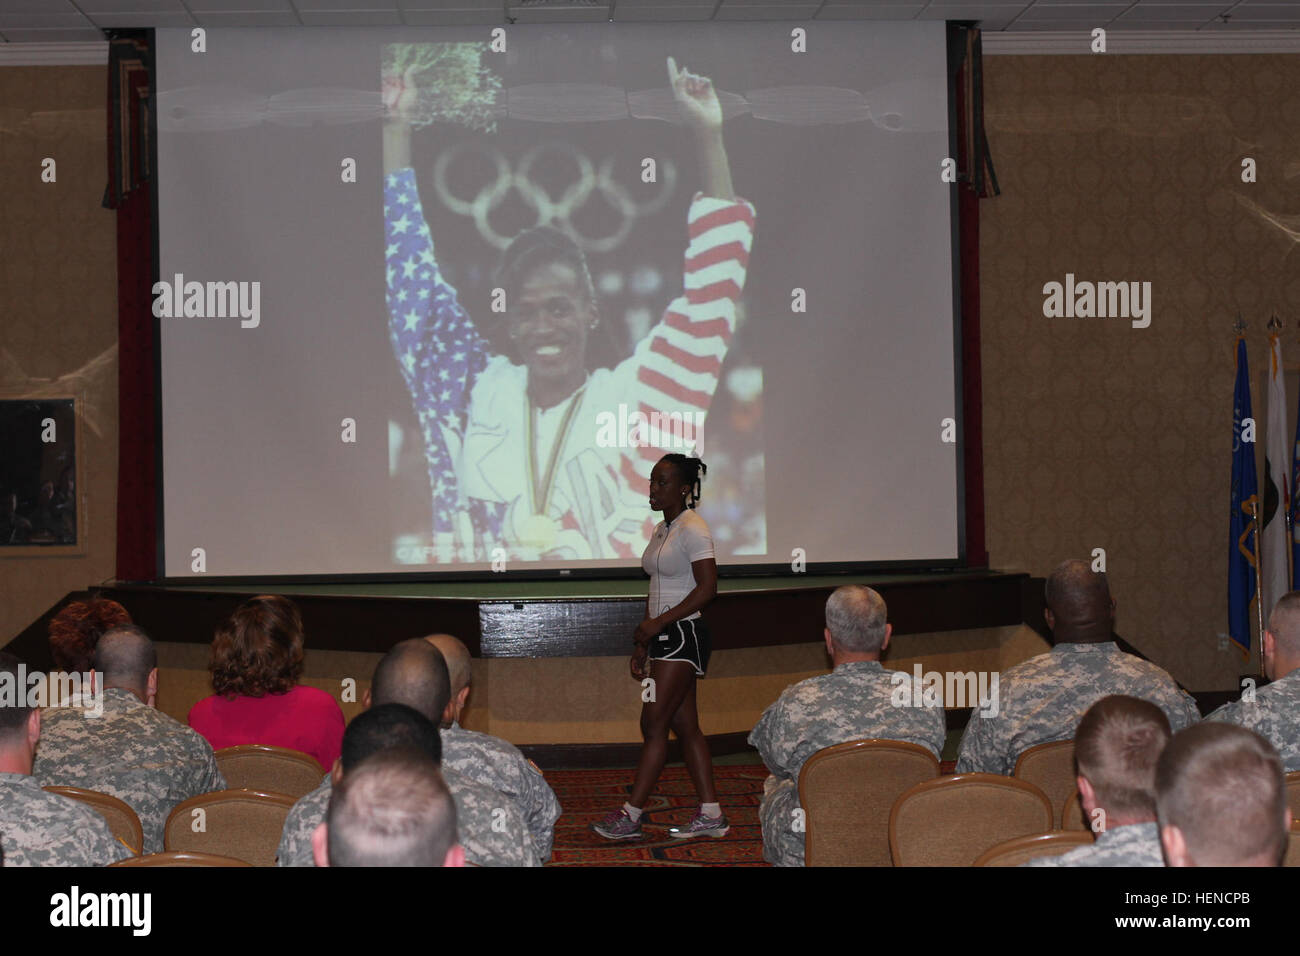 Sgt. Breanda Crump, from Mount Vernon, N.Y., and an intelligence analyst with Headquarters and Headquarters Company, - Stock Image